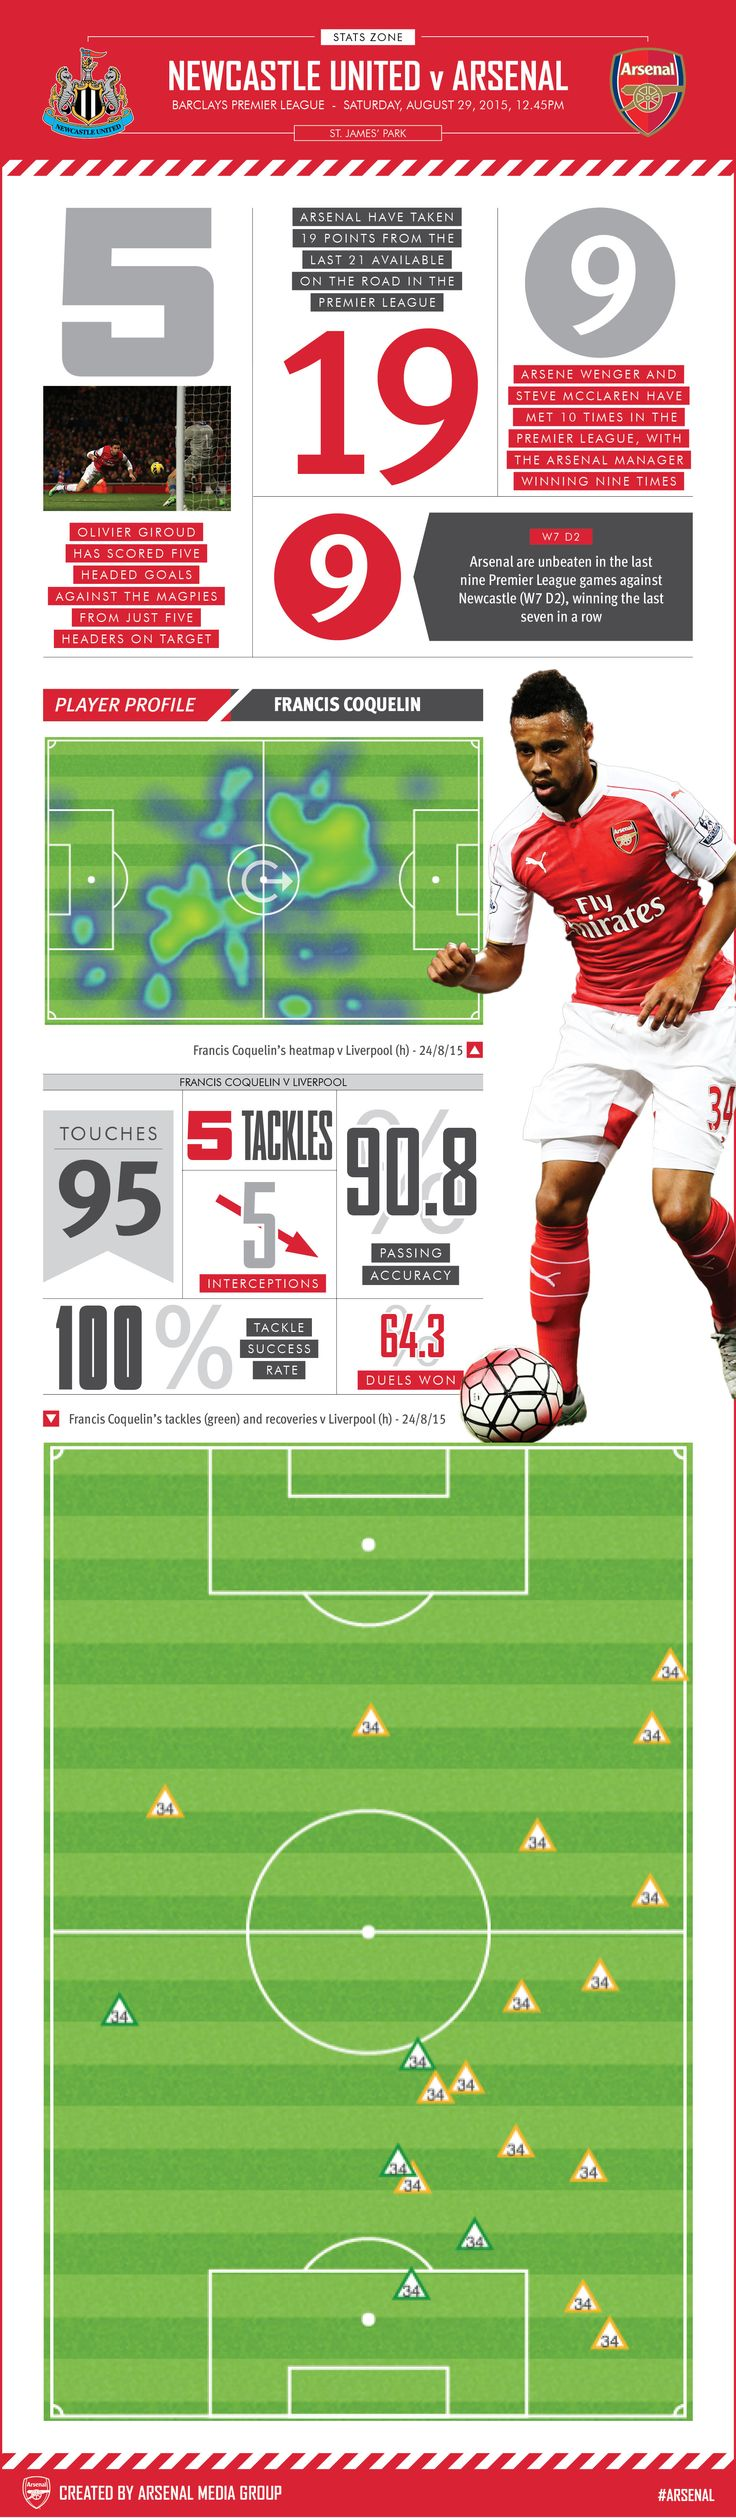 Newcastle United v Arsenal Our latest infographic has match stats and a closer look at Francis Coquelin's performance against Liverpool.